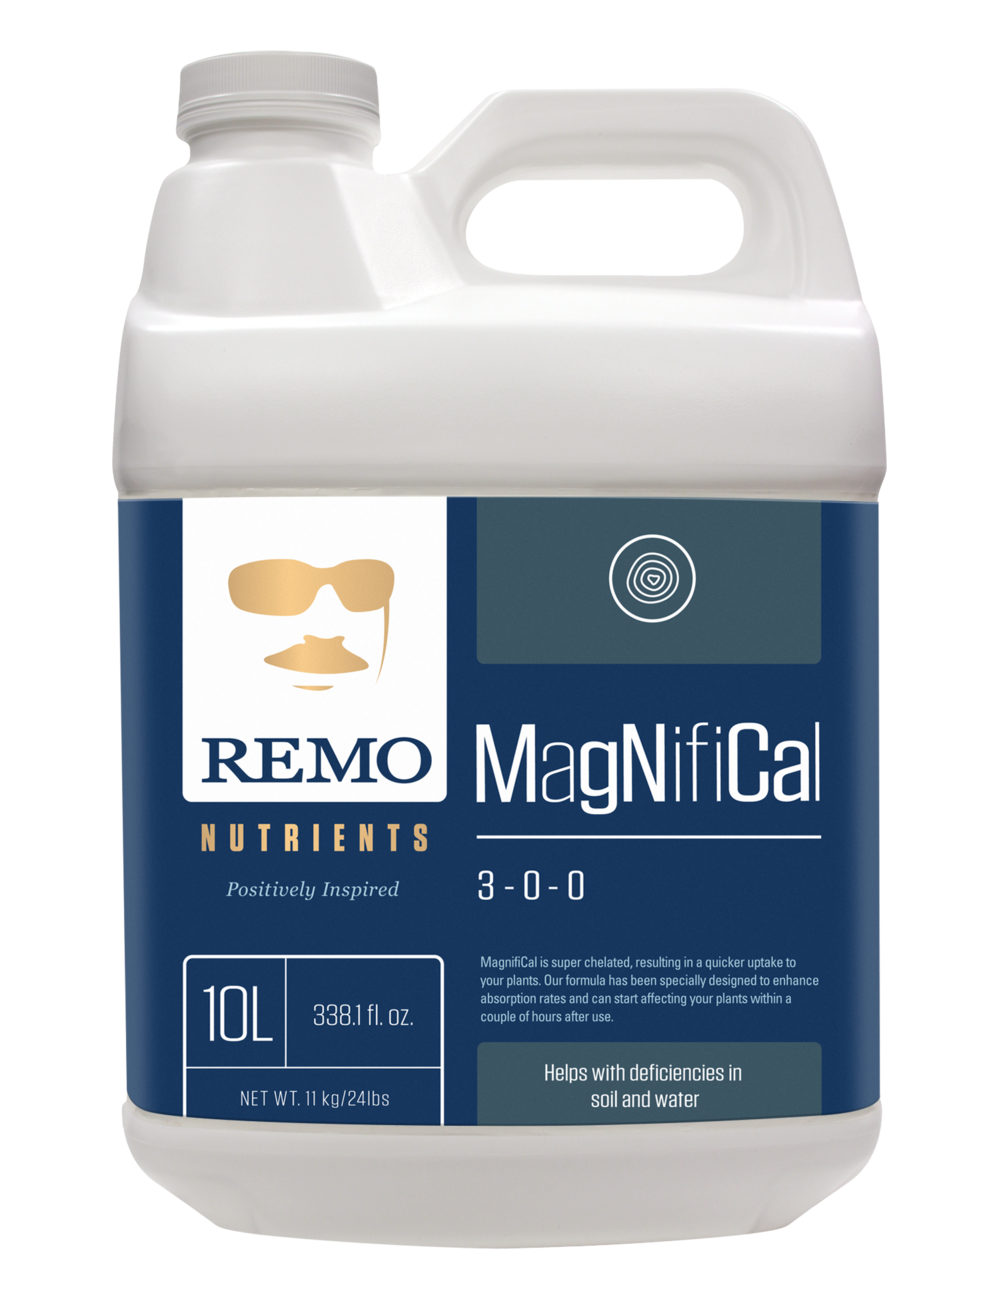 REMO'S MAGNIFICAL 10 LITER